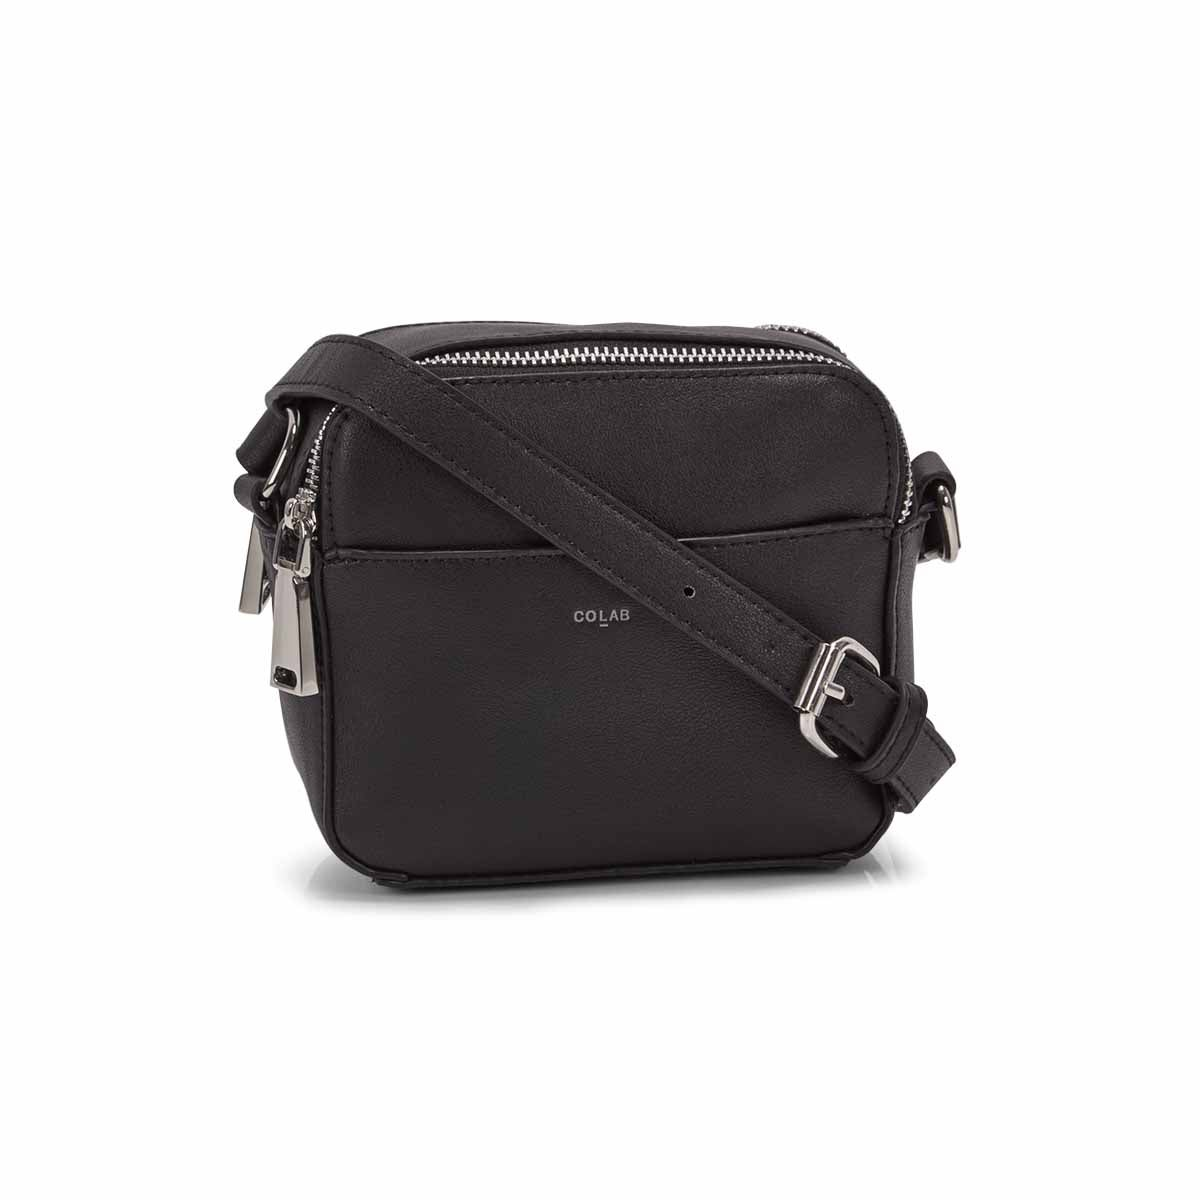 Women's MALIBU CAMERA black crossbody bag